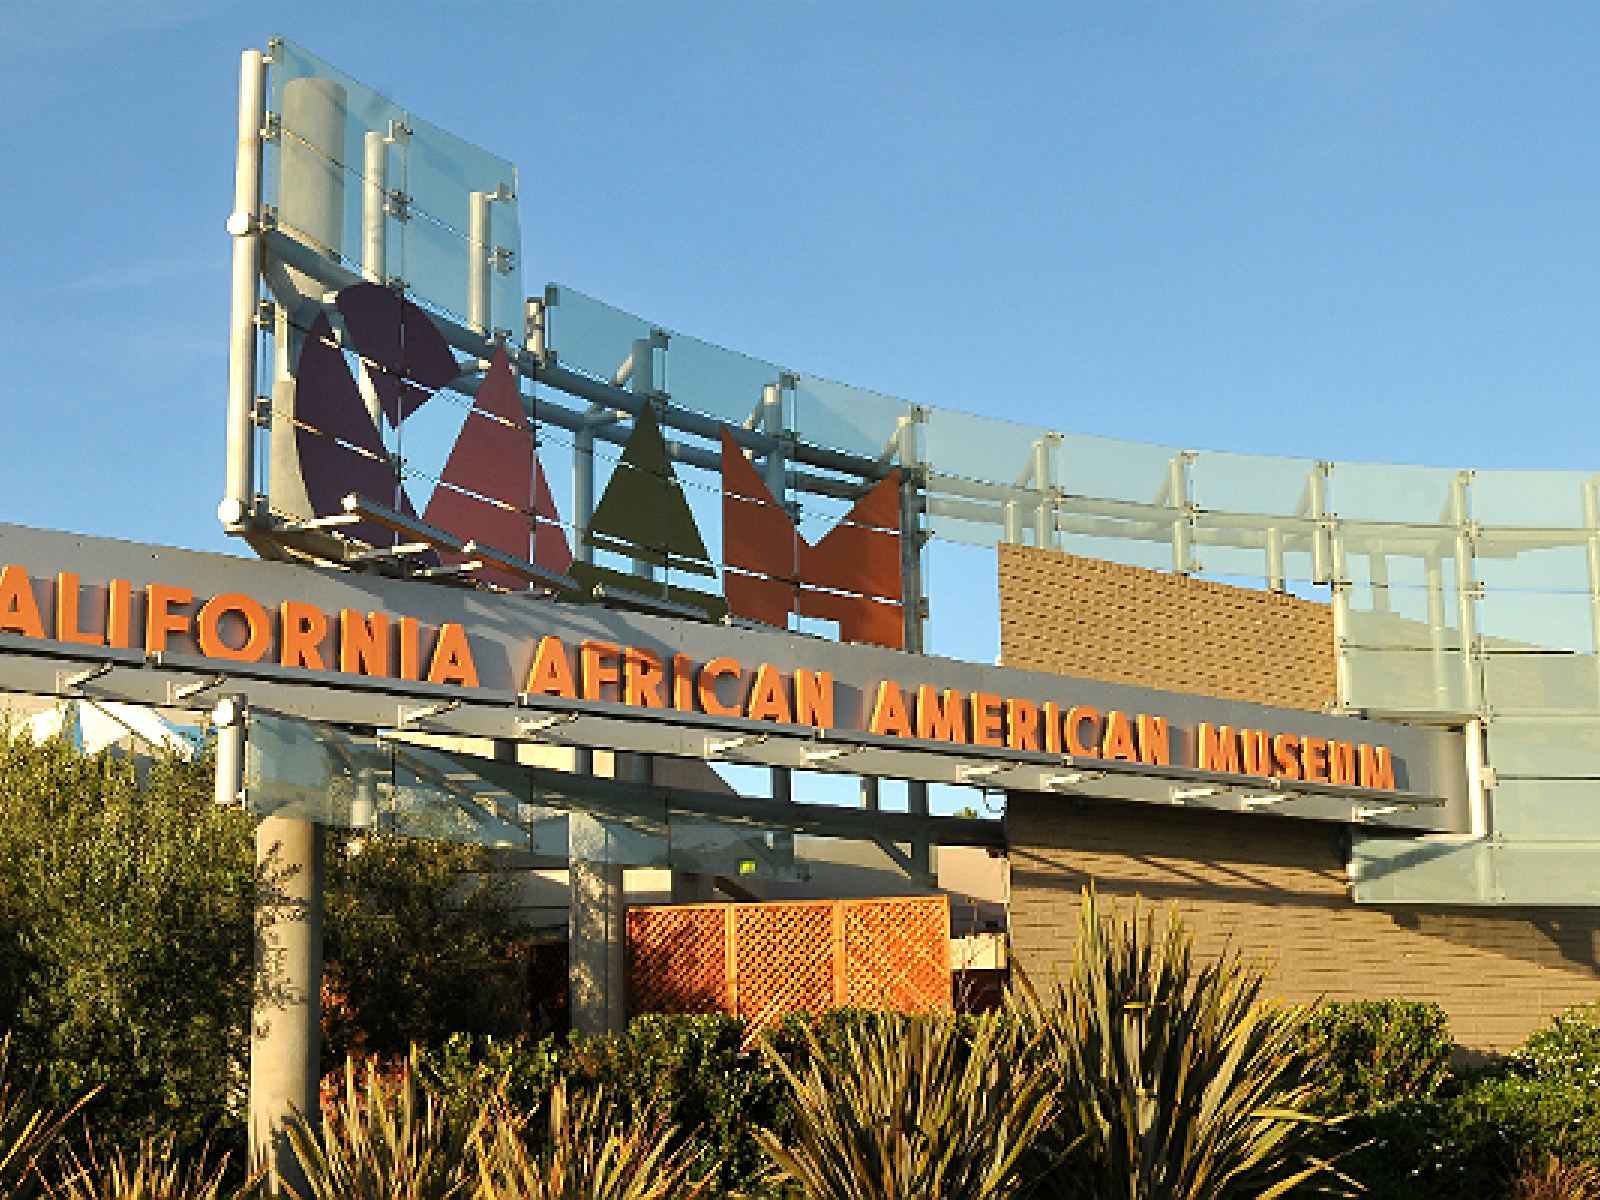 Main image for article titled Discover the California African American Museum